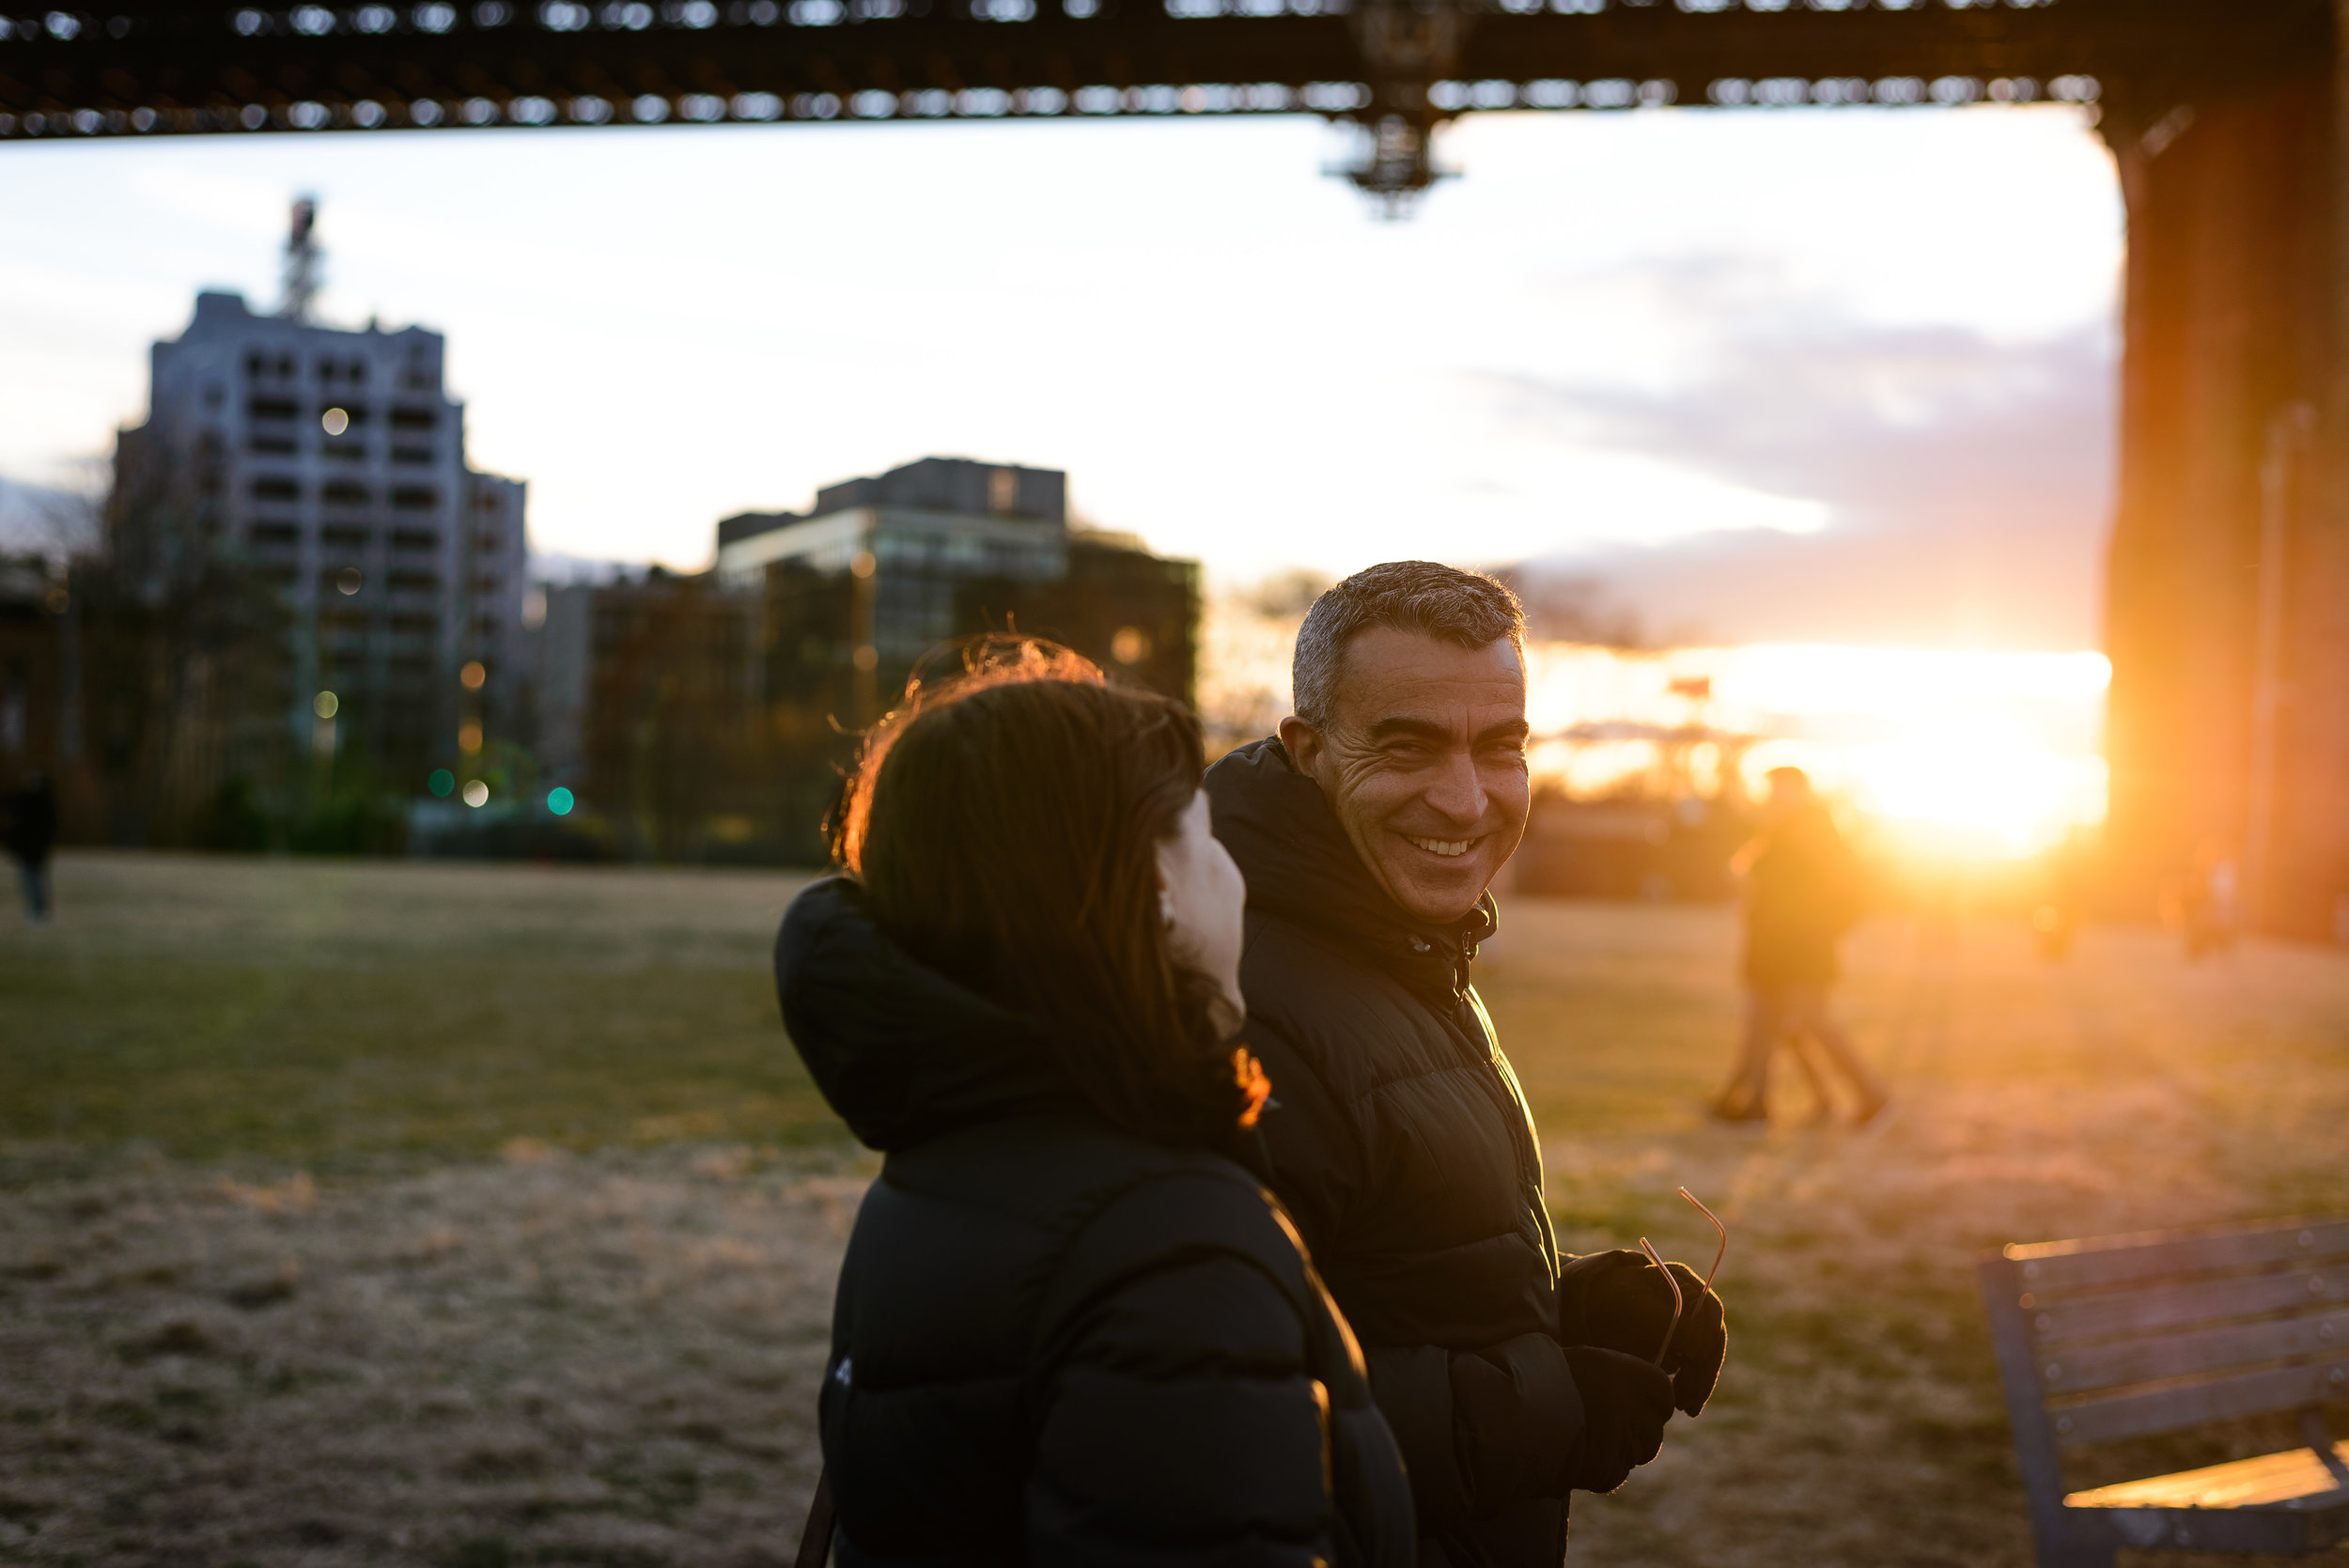 Nikon D610, Nikkor 50 1.8G, 1/320, ISO-100. Mum and Dad on their recent trip to NYC.